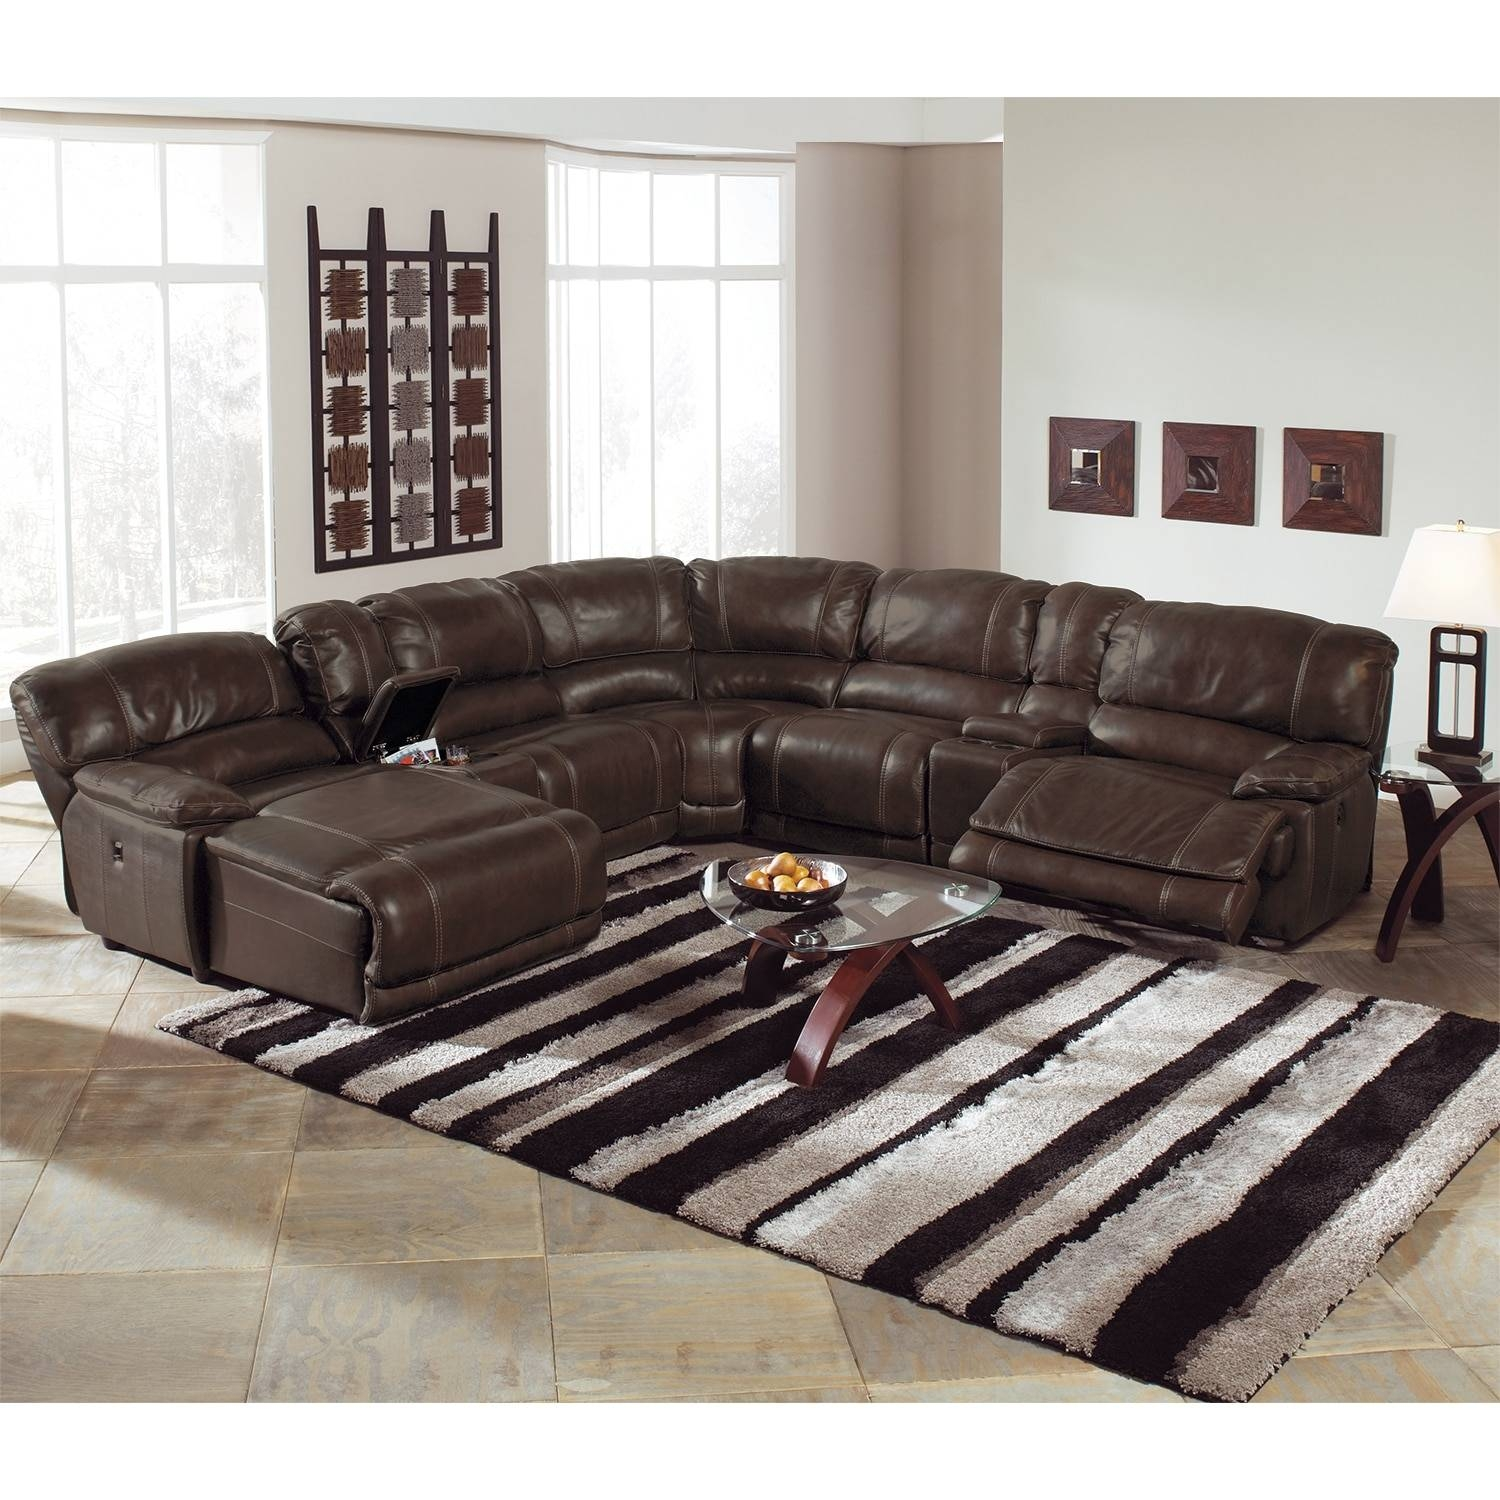 Cozy 6 Piece Leather Sectional Sofa 80 With Additional Camel throughout Camel Colored Sectional Sofa (Image 19 of 30)